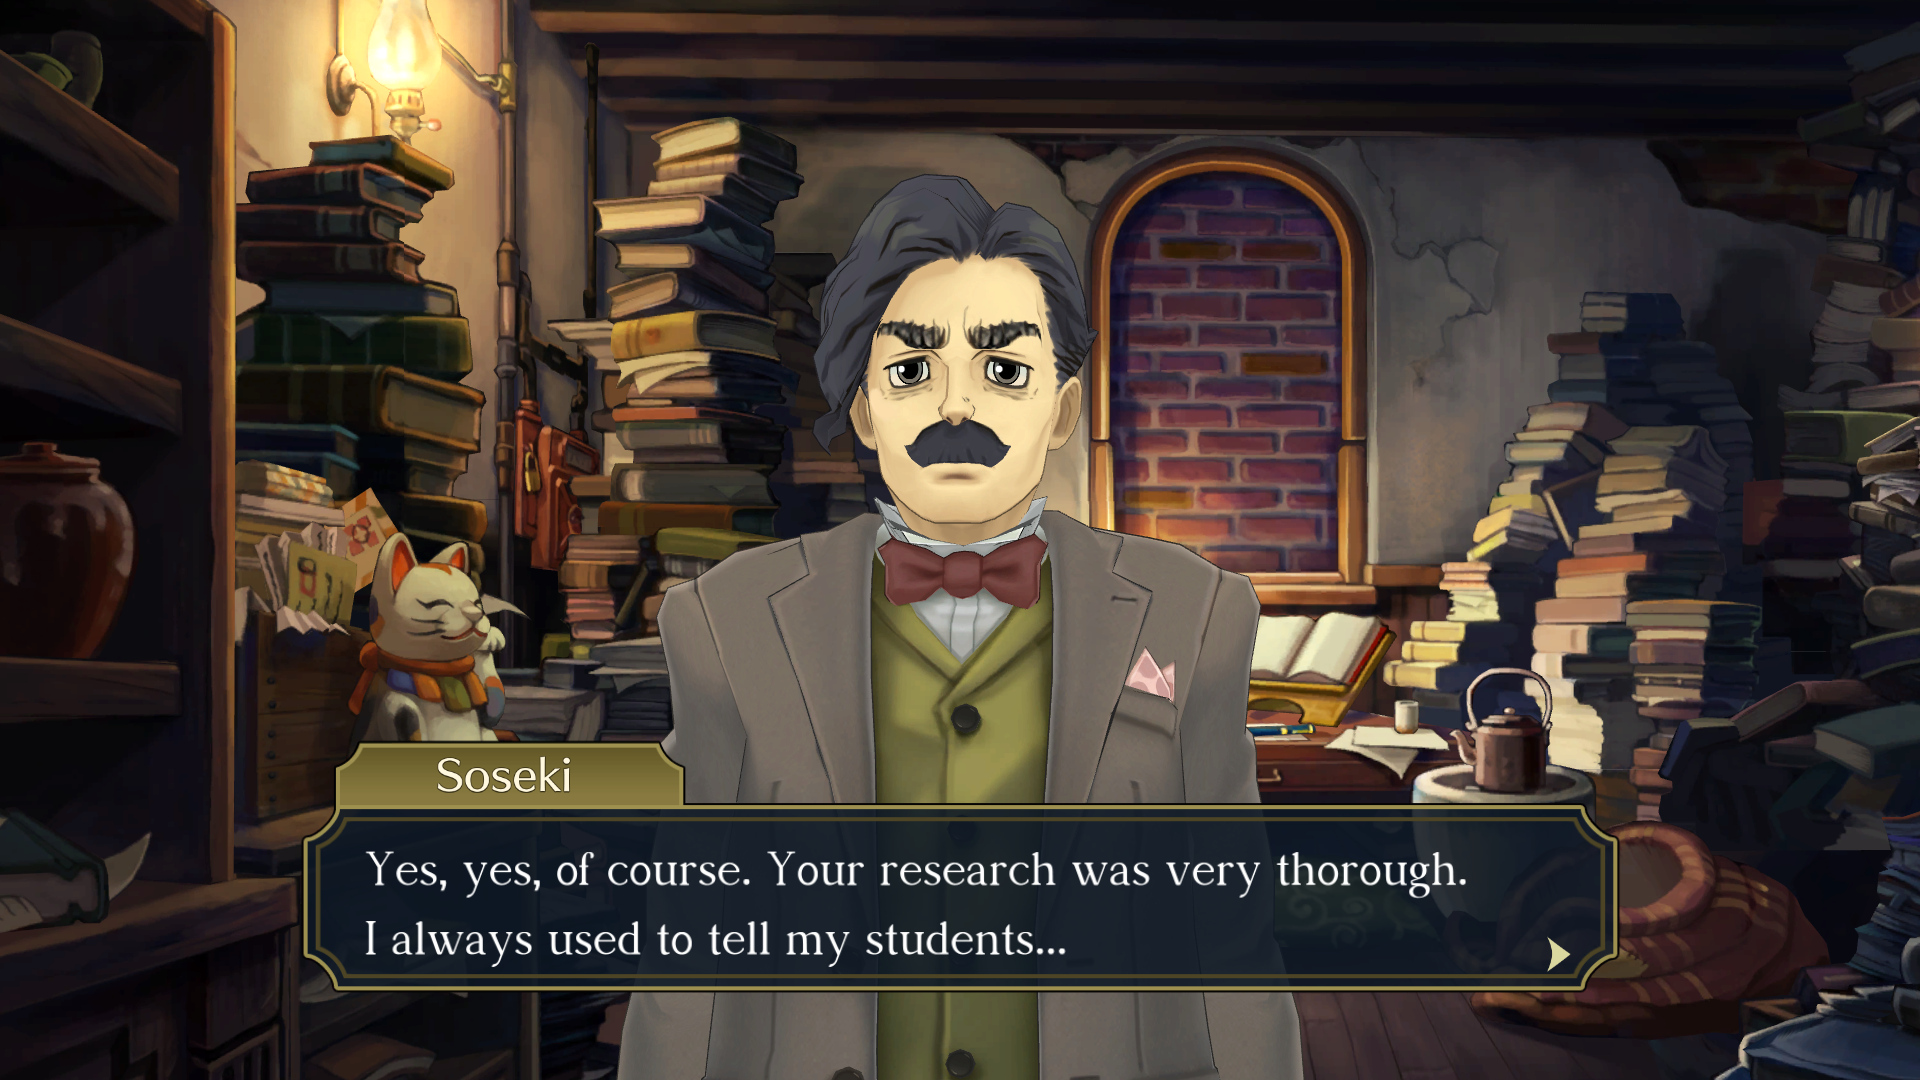 """The Great Ace Attorney Chronicles - Soseki says: """"Yes, yes, of course. Your research was very thorough. I always used to tell my students..."""""""